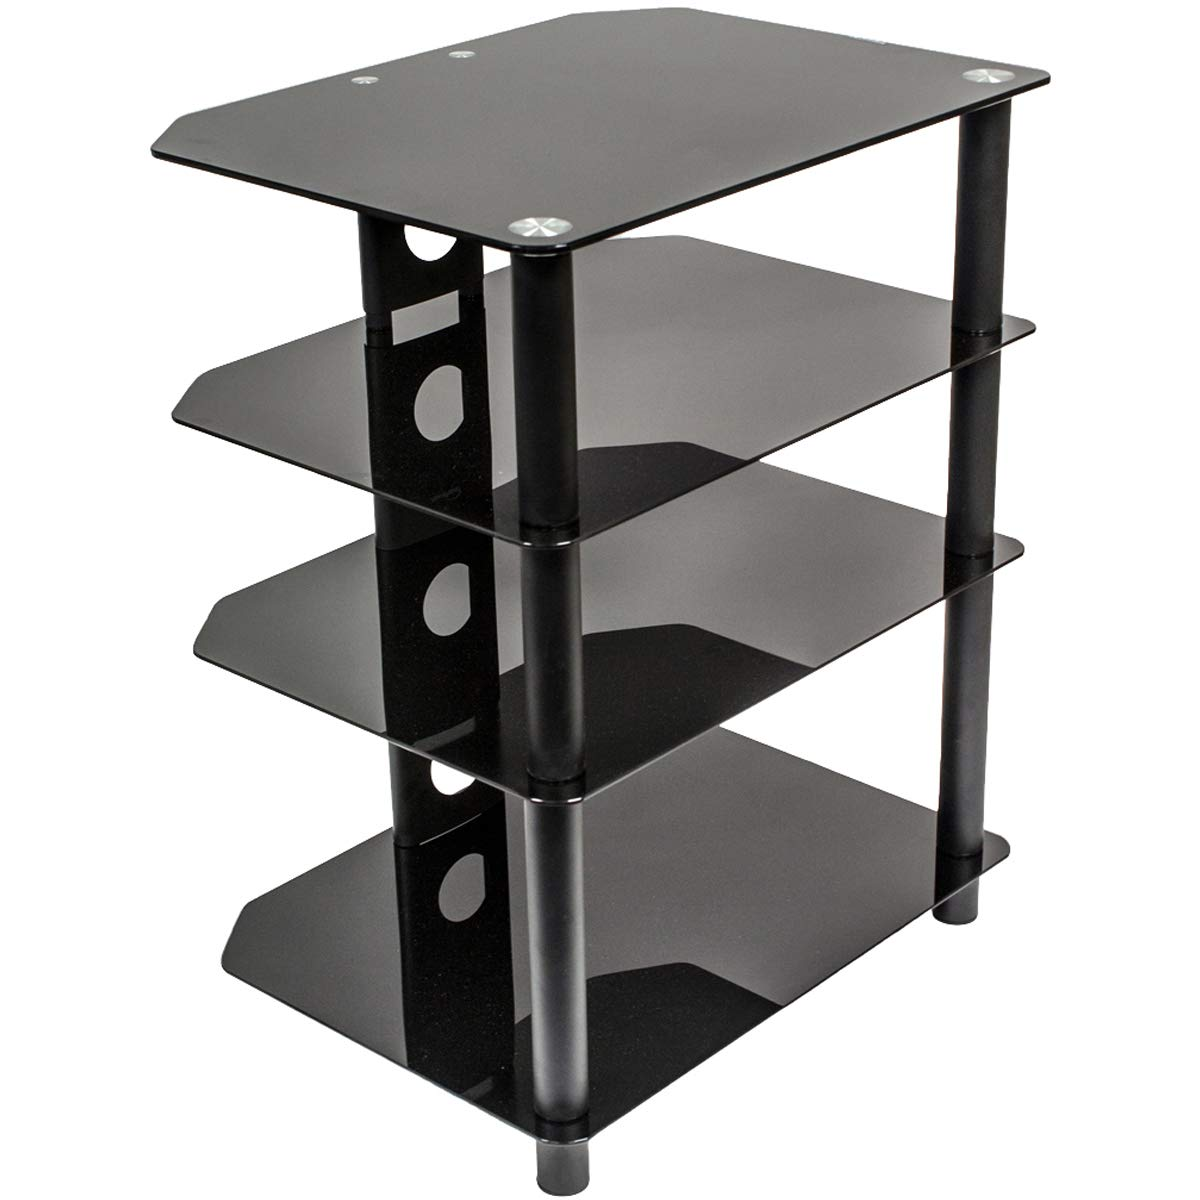 NavePoint Media Stand Glass 4 Shelf Audio Video Component Storage Tower by NavePoint